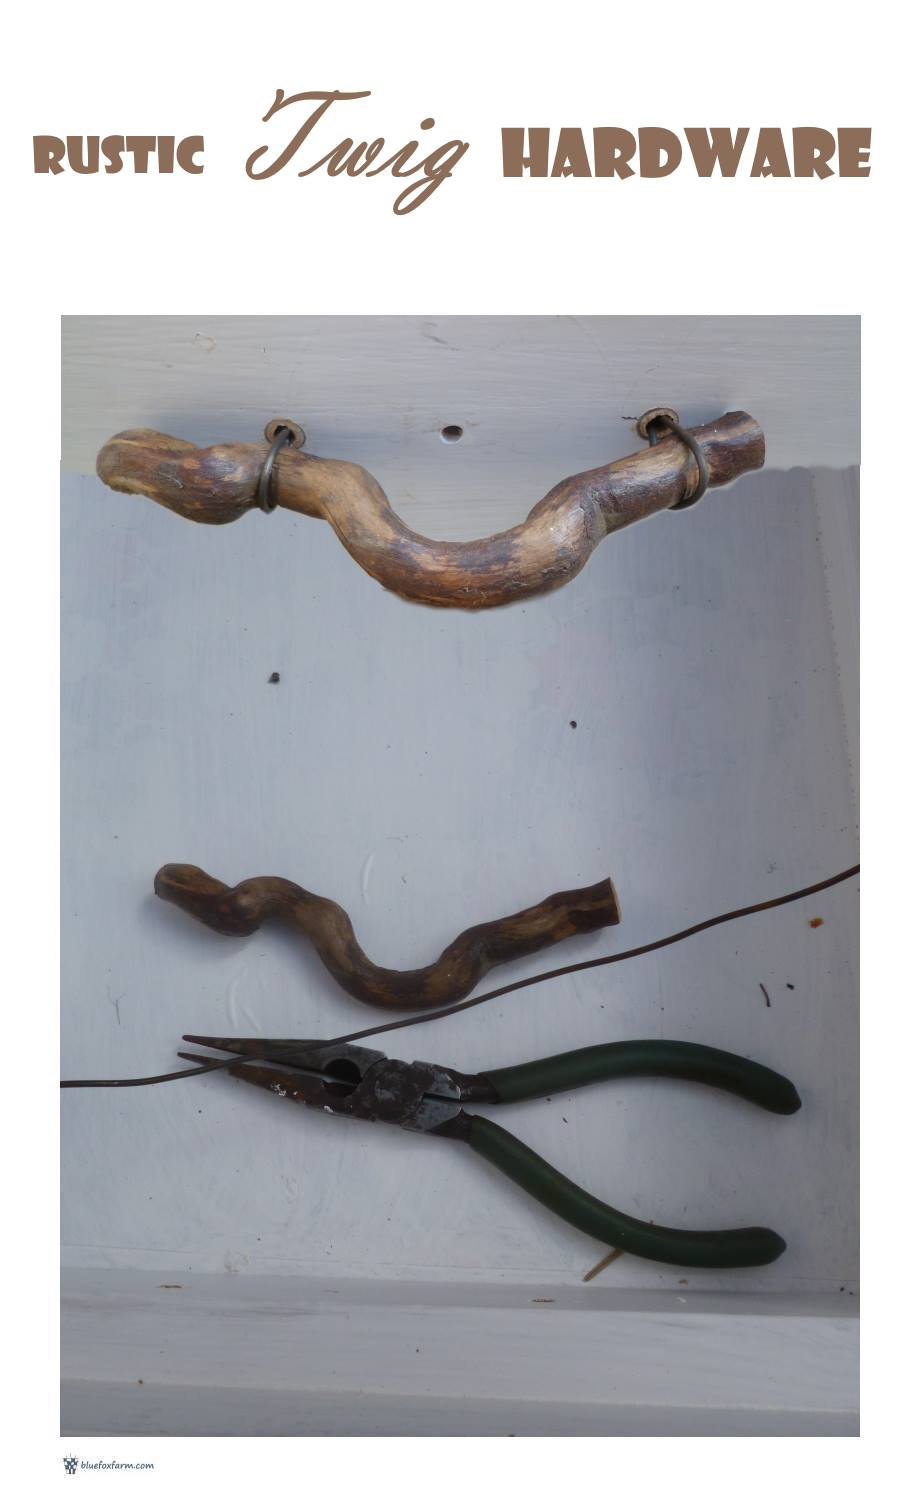 DIY your own Rustic Twig Hardware